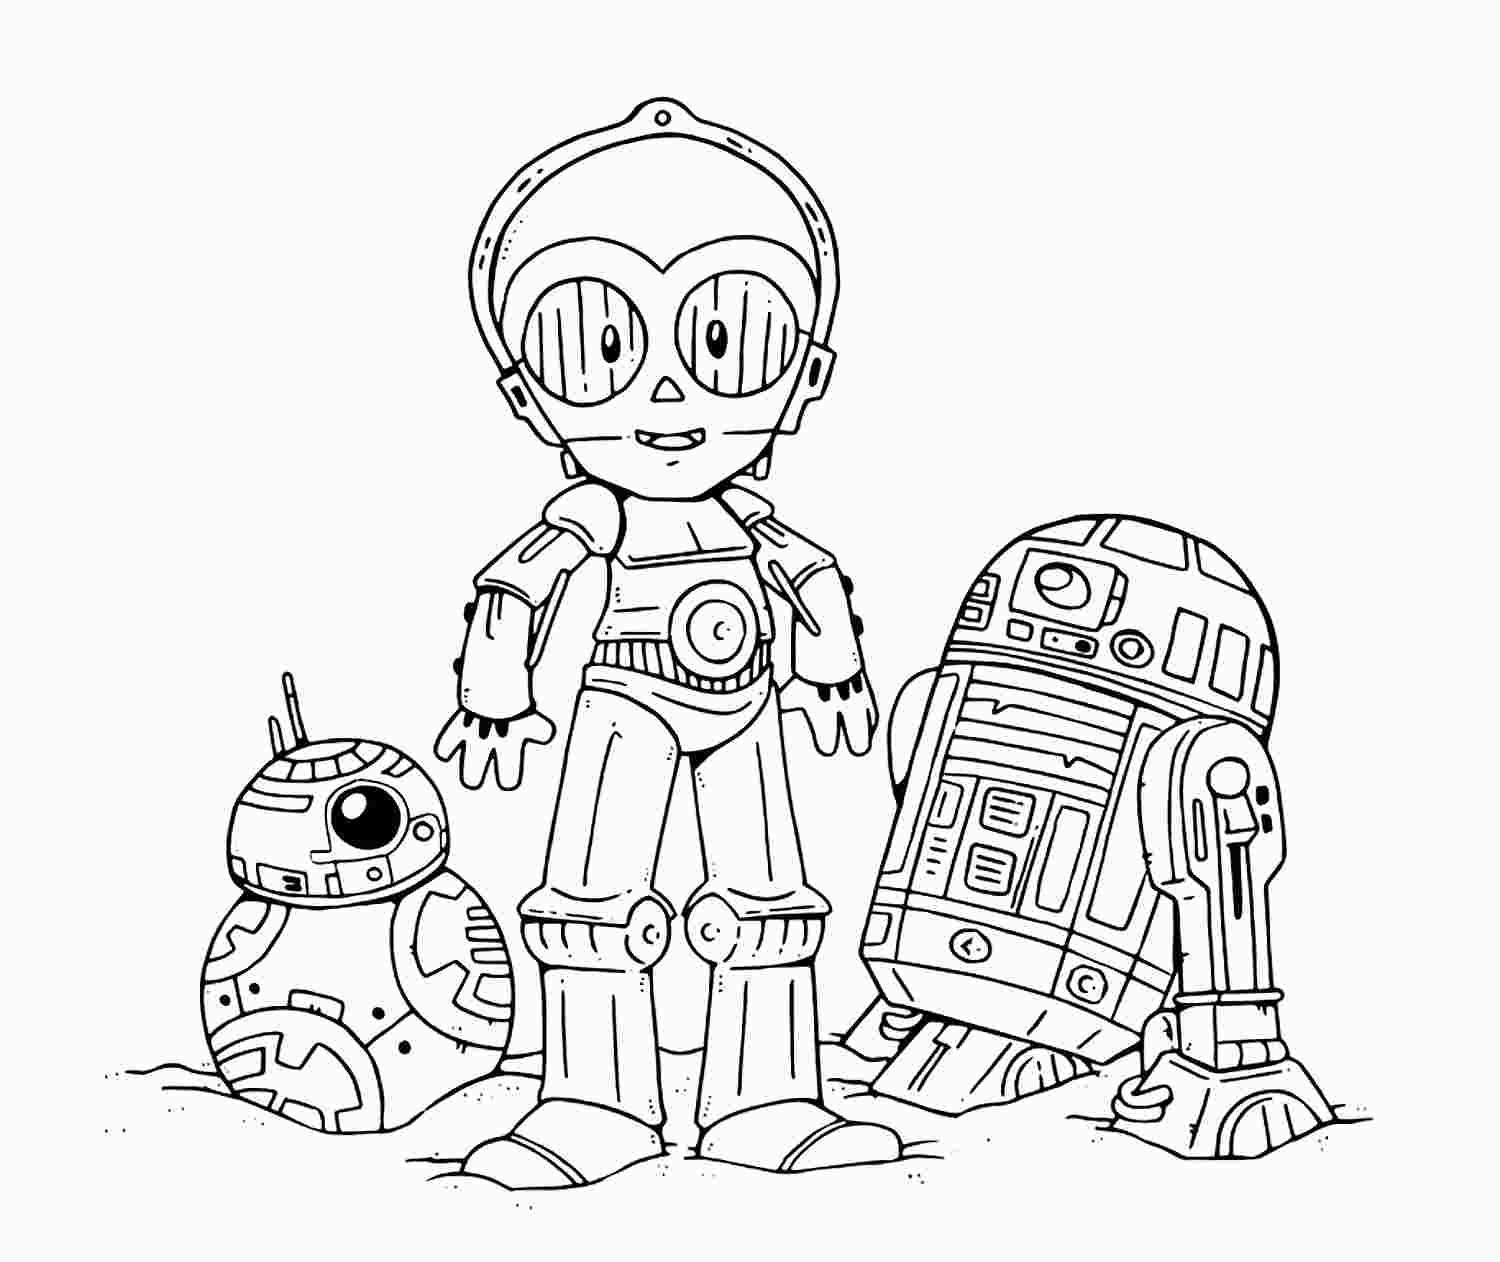 Cute Star Wars Coloring Pages With Images Star Wars Drawings